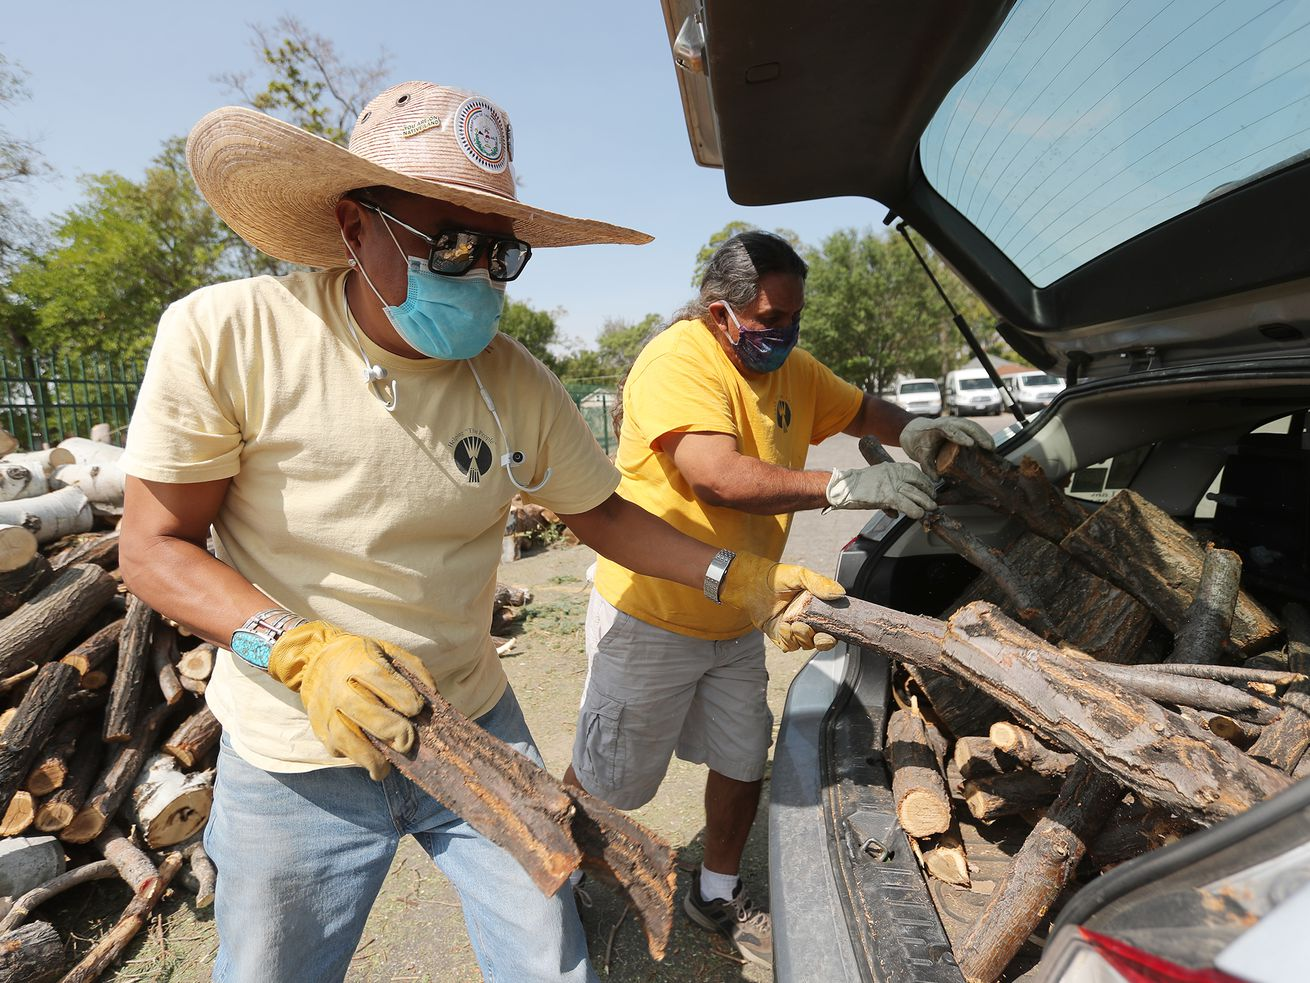 Gabe Brodie and Nino Reyos unload wood from a car at the The Urban Indian Center of Salt Lake on Sunday, Sept. 13, 2020. The wood will be taken to the Navajo Nation to be given to their elders.